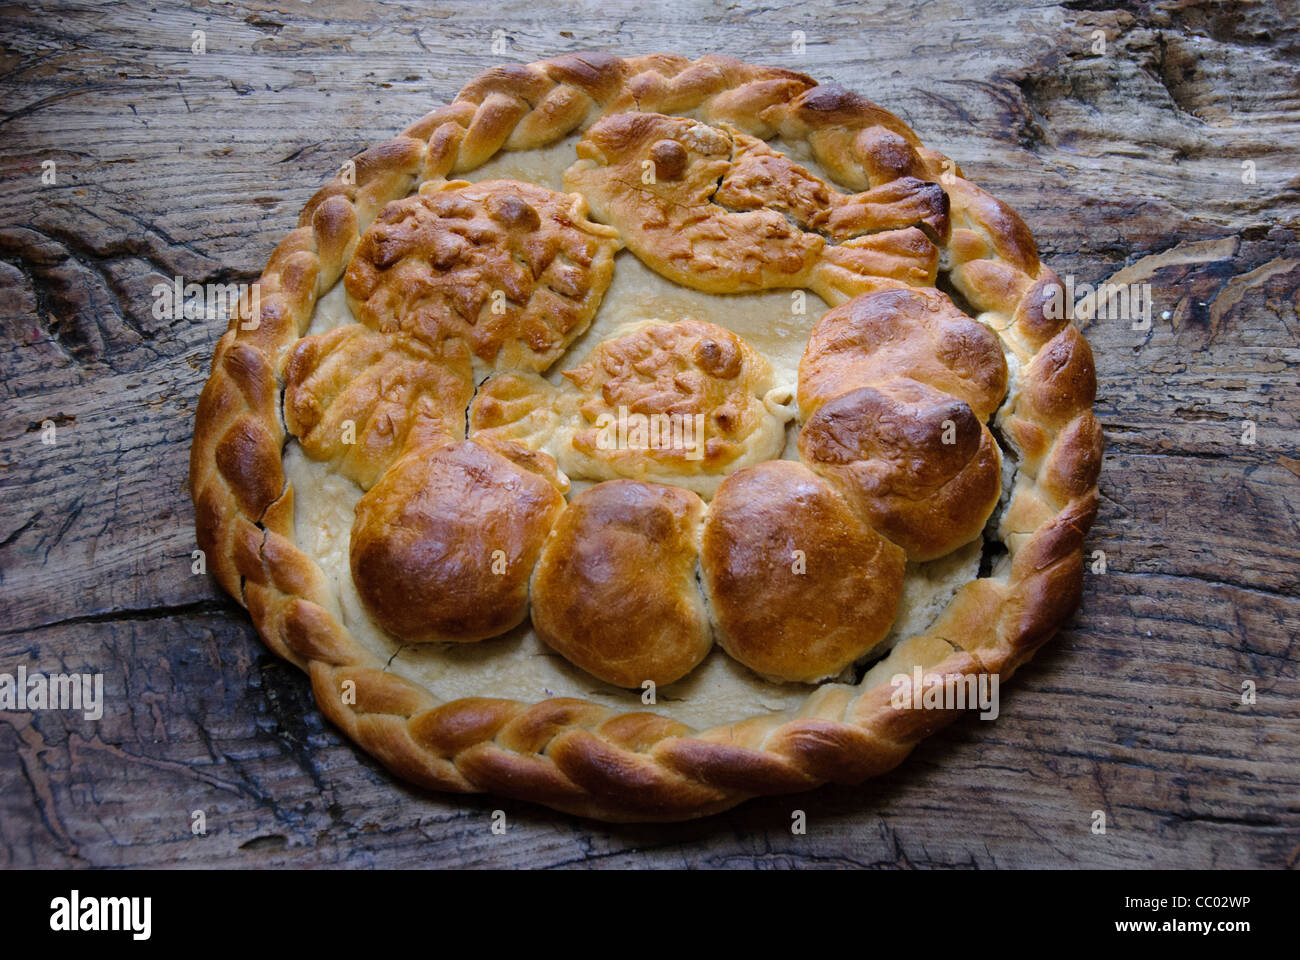 Home made ornamental harvest loaf with motif of five loaves and two fishes and plaited edge - Stock Image